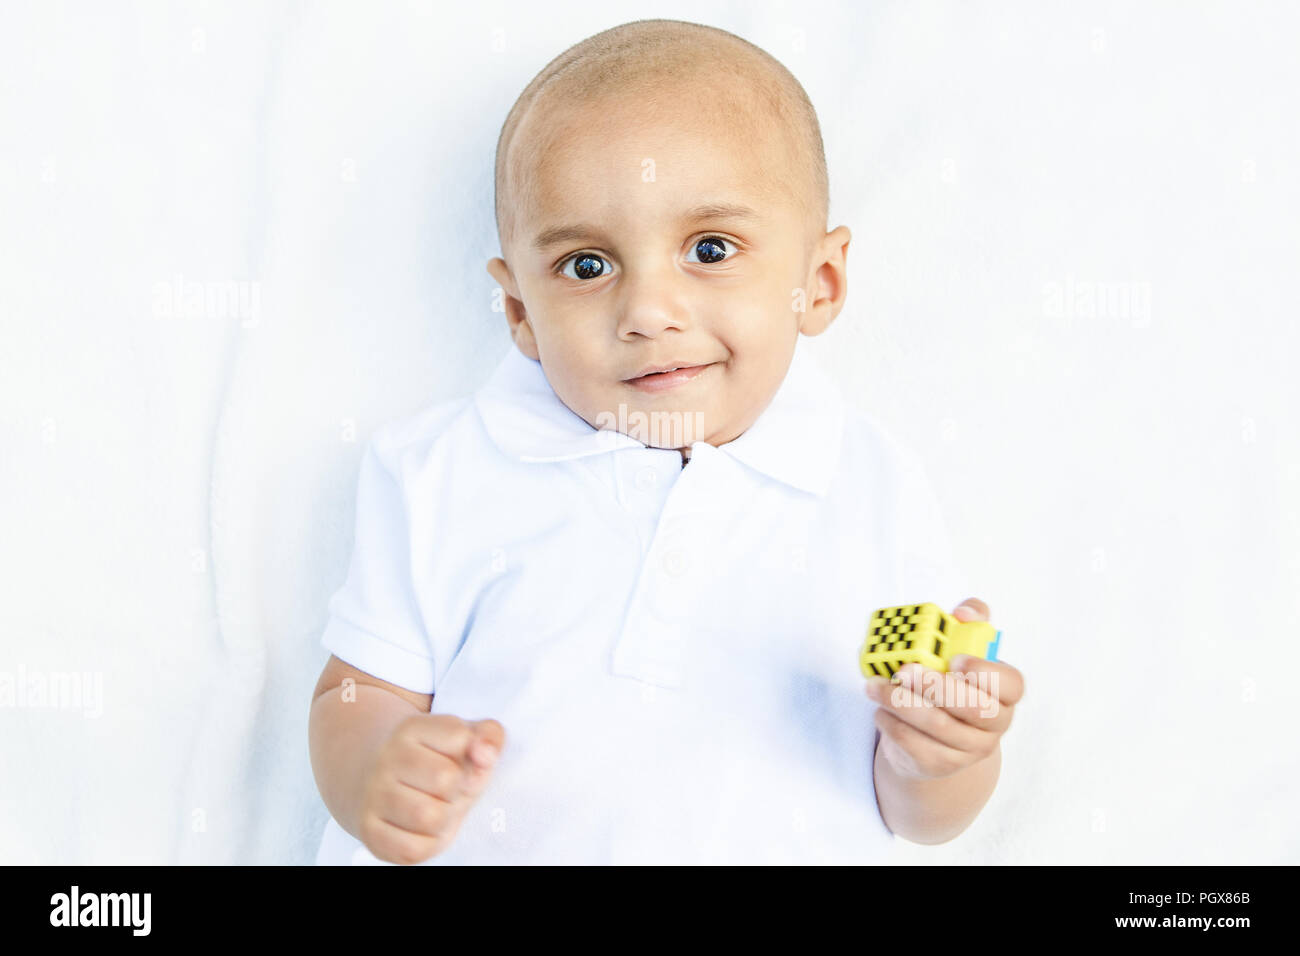 003a44687 Indian Baby Boy Stock Photos   Indian Baby Boy Stock Images - Alamy